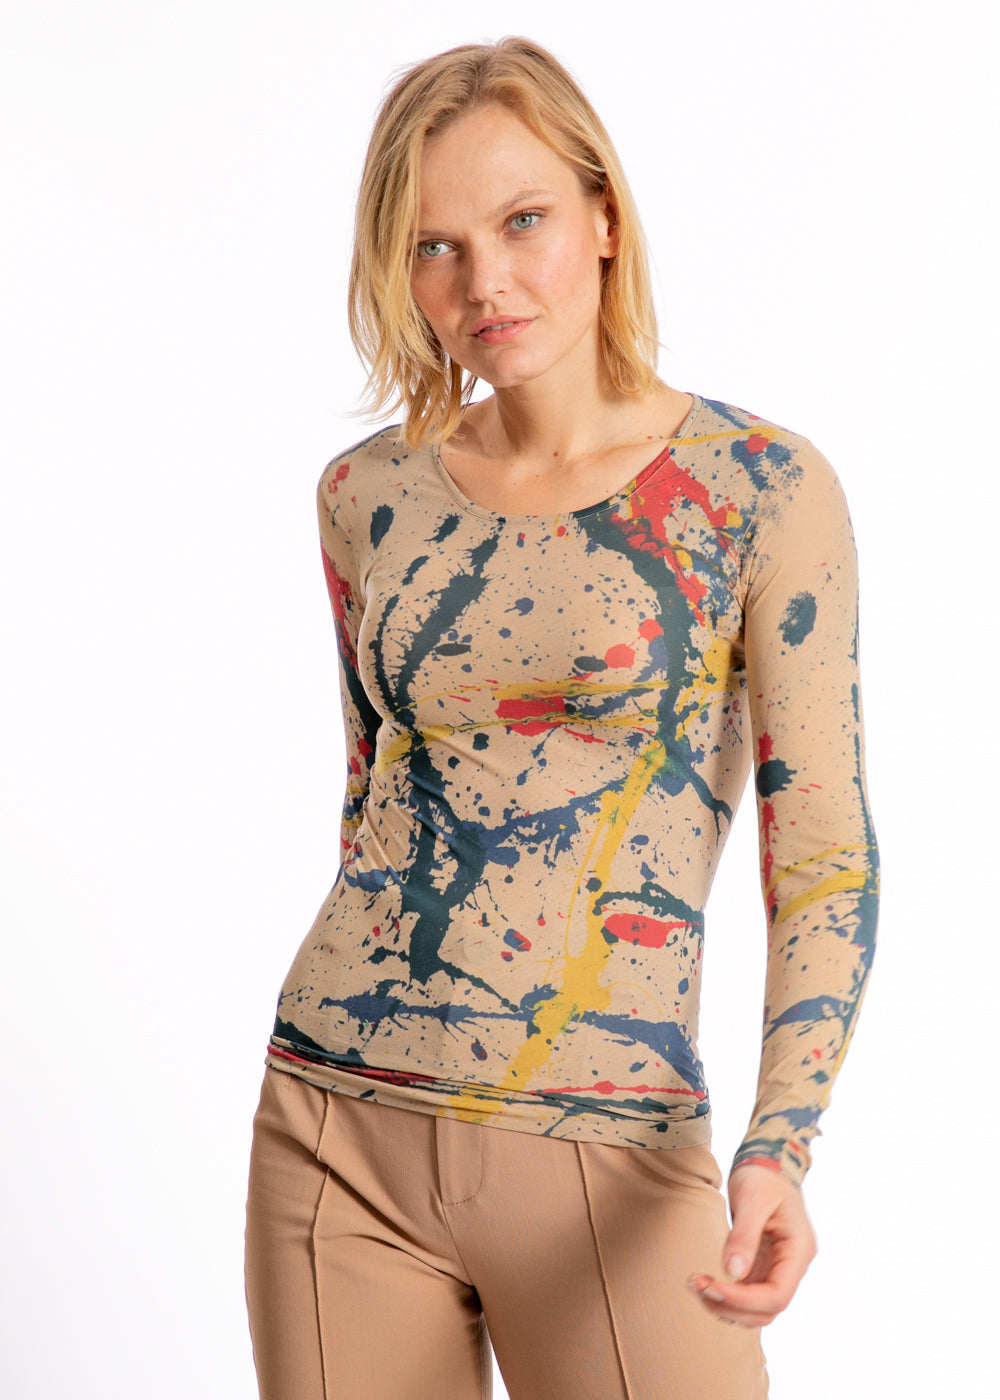 Pollock Second Skin Crew Neck Top